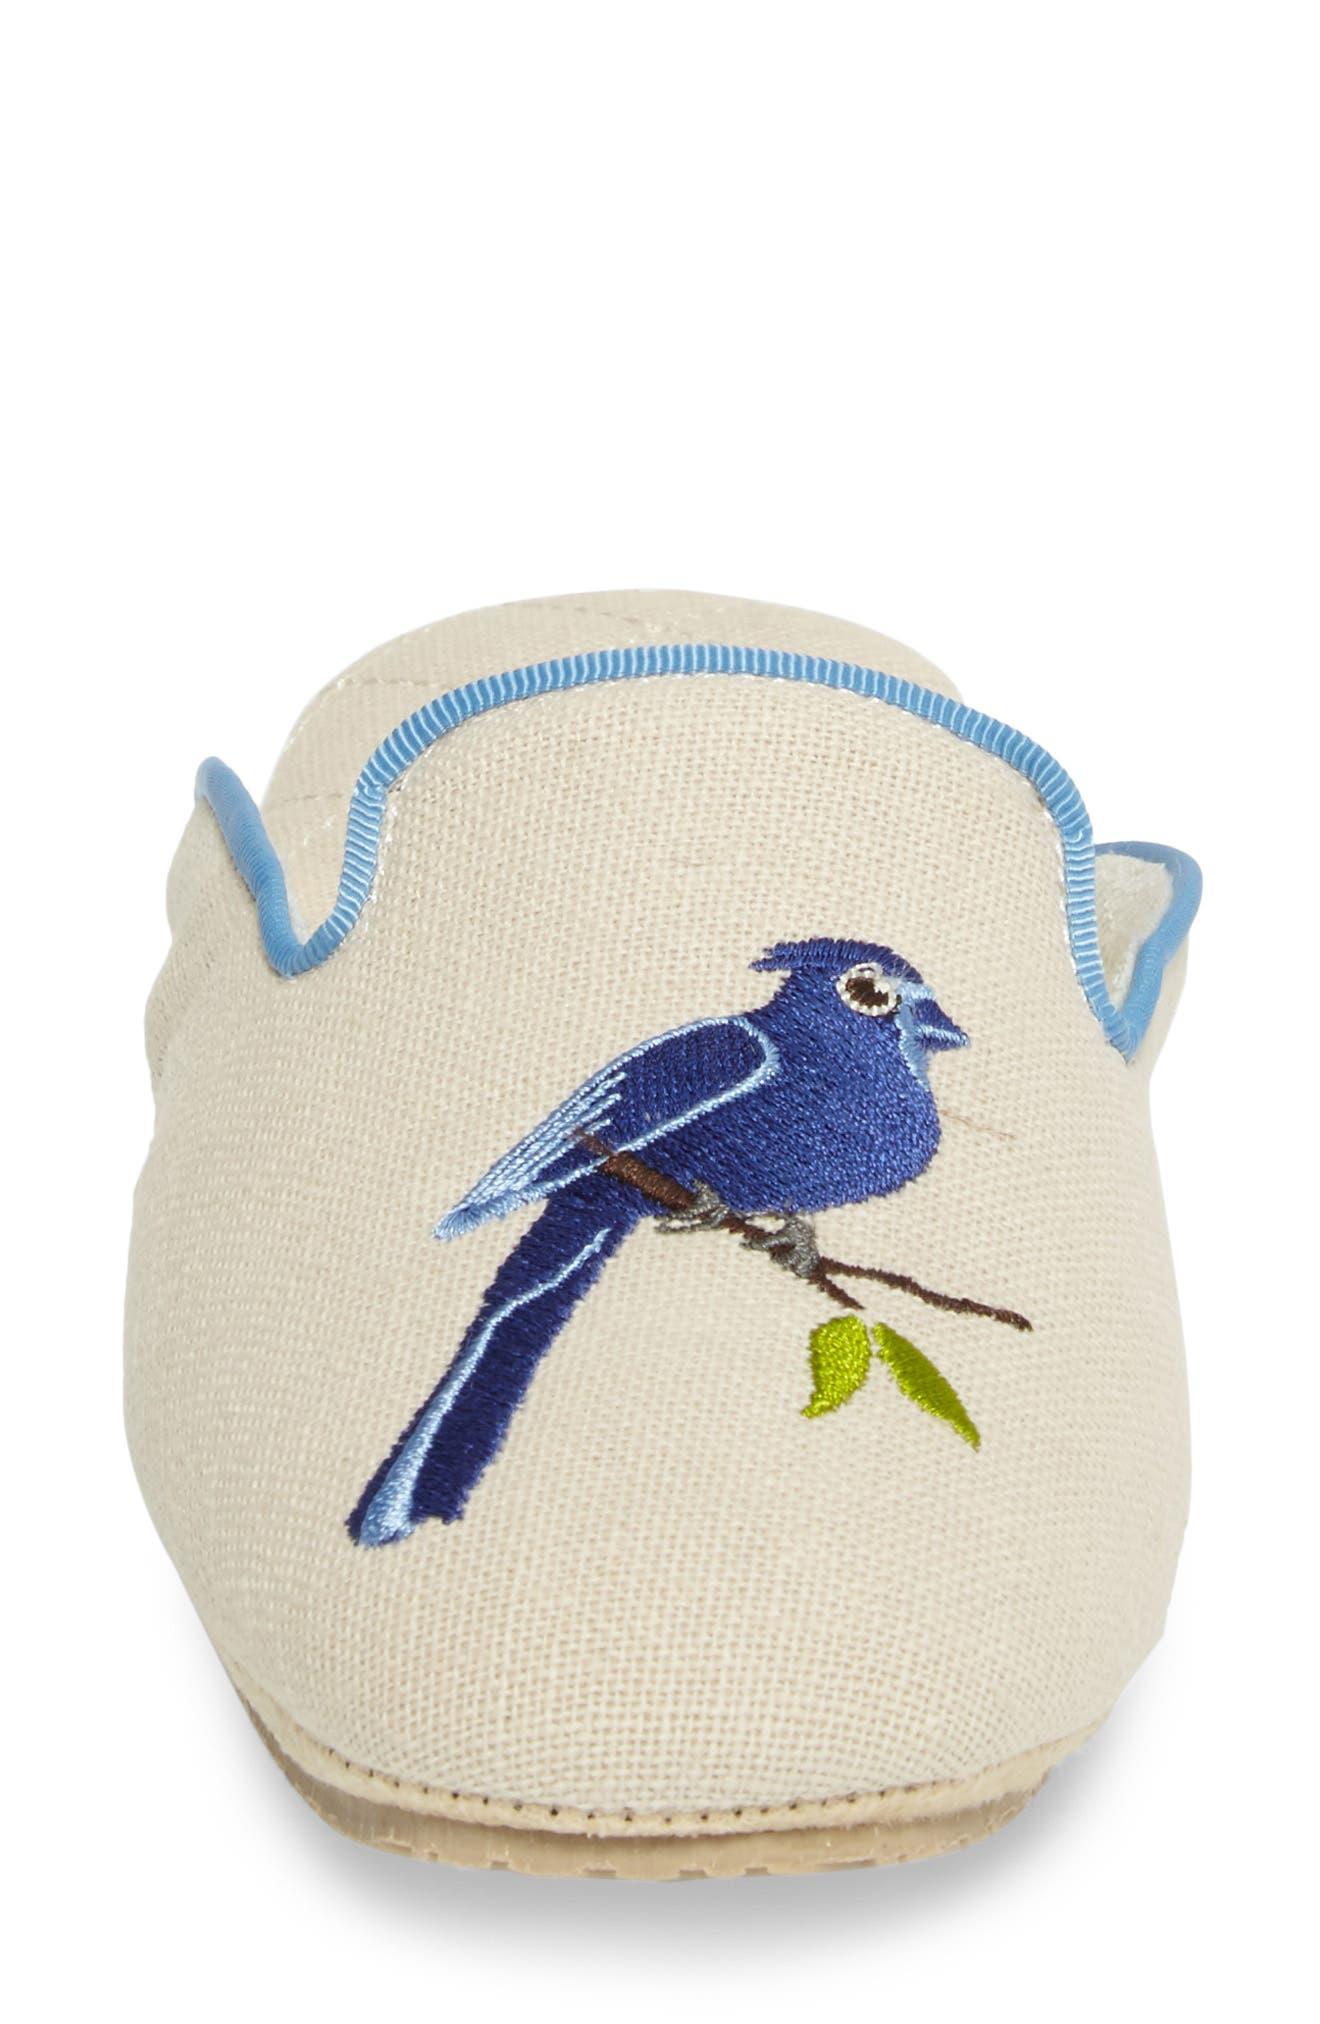 Bluebird Embroidered Slipper,                             Alternate thumbnail 4, color,                             255